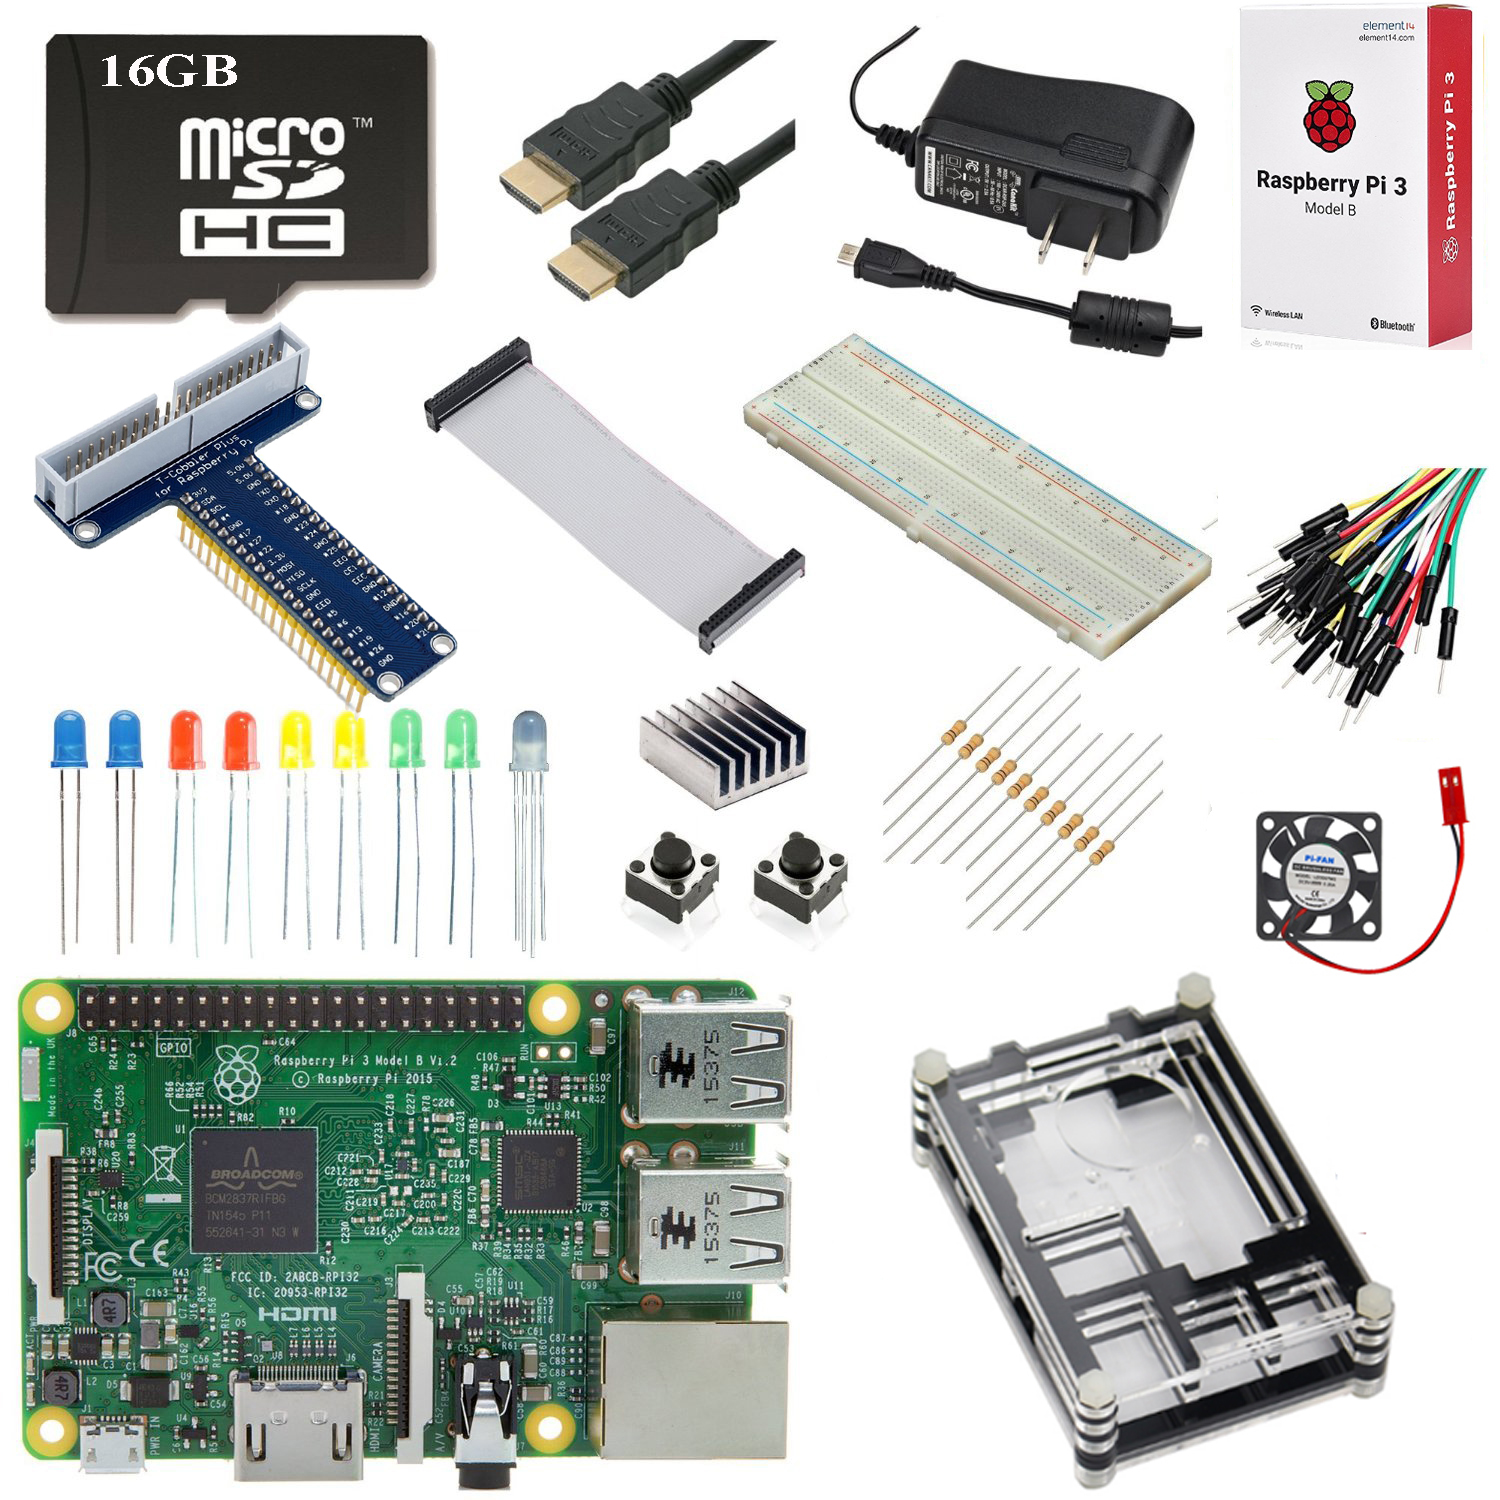 Raspberry Pi 3 Ultimate Starter Kit 16 GB Edition with High Quality Retail Box